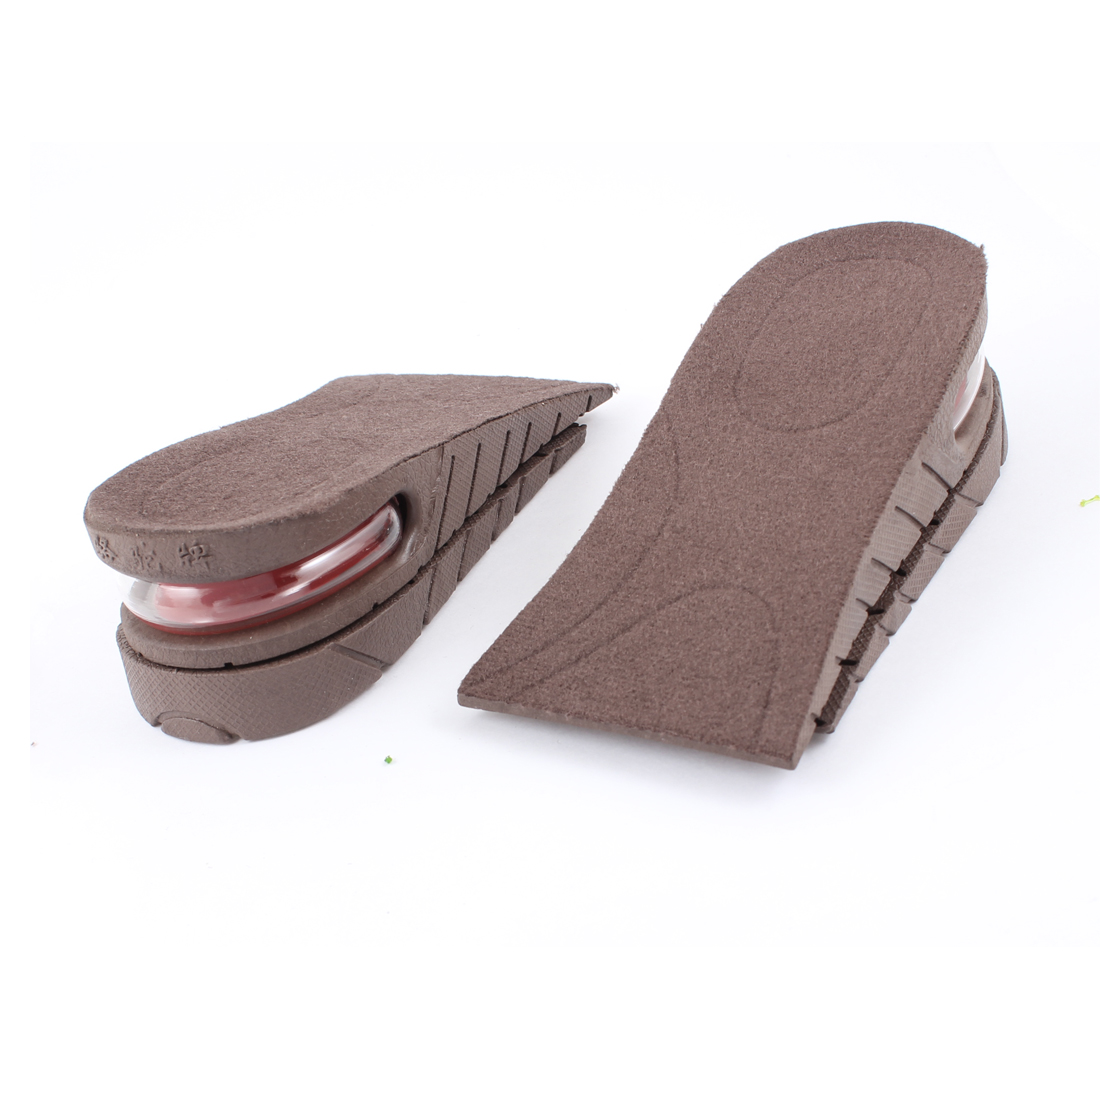 "Dark Brown Soft Rubber 2 Layers 1.8"" Up Taller Shoe Height Inserts Insoles Pair"